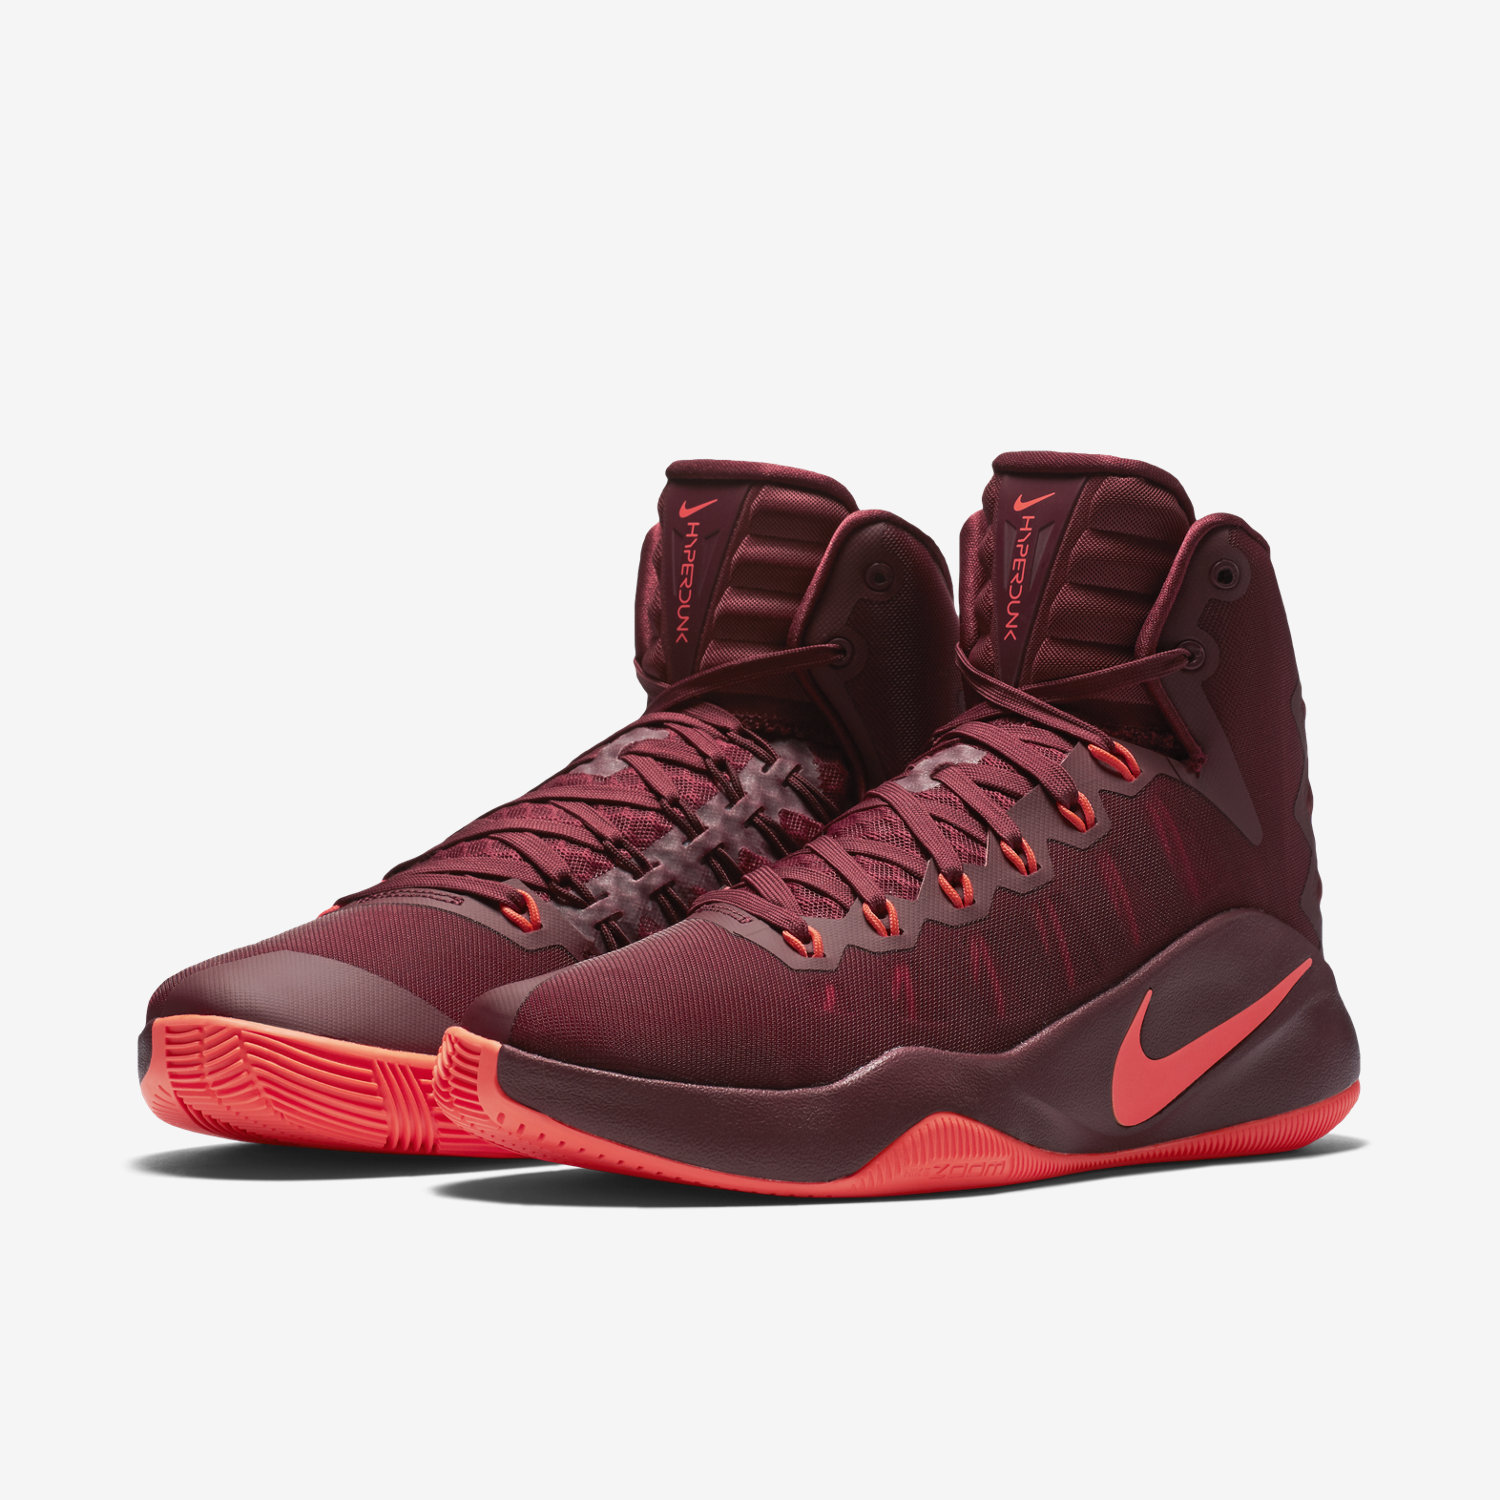 6a3648d12d25 ... coupon code for nike hyperdunk 2016 silver red 04a6a 212db